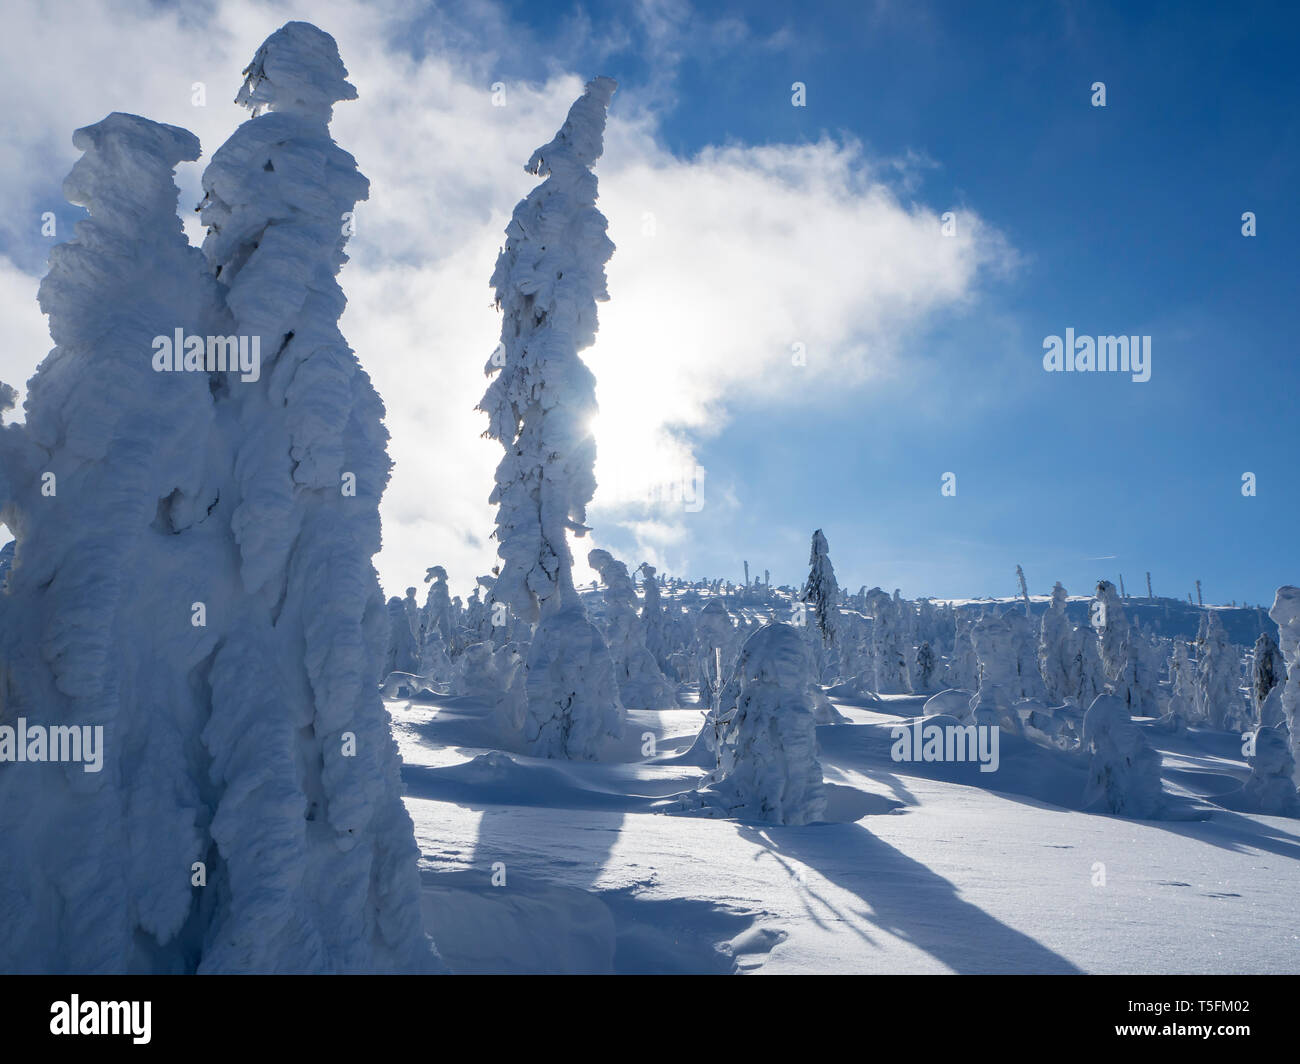 Germany, Upper Bavarian Forest Nature Park, winter landscape with snow-covered conifers - Stock Image